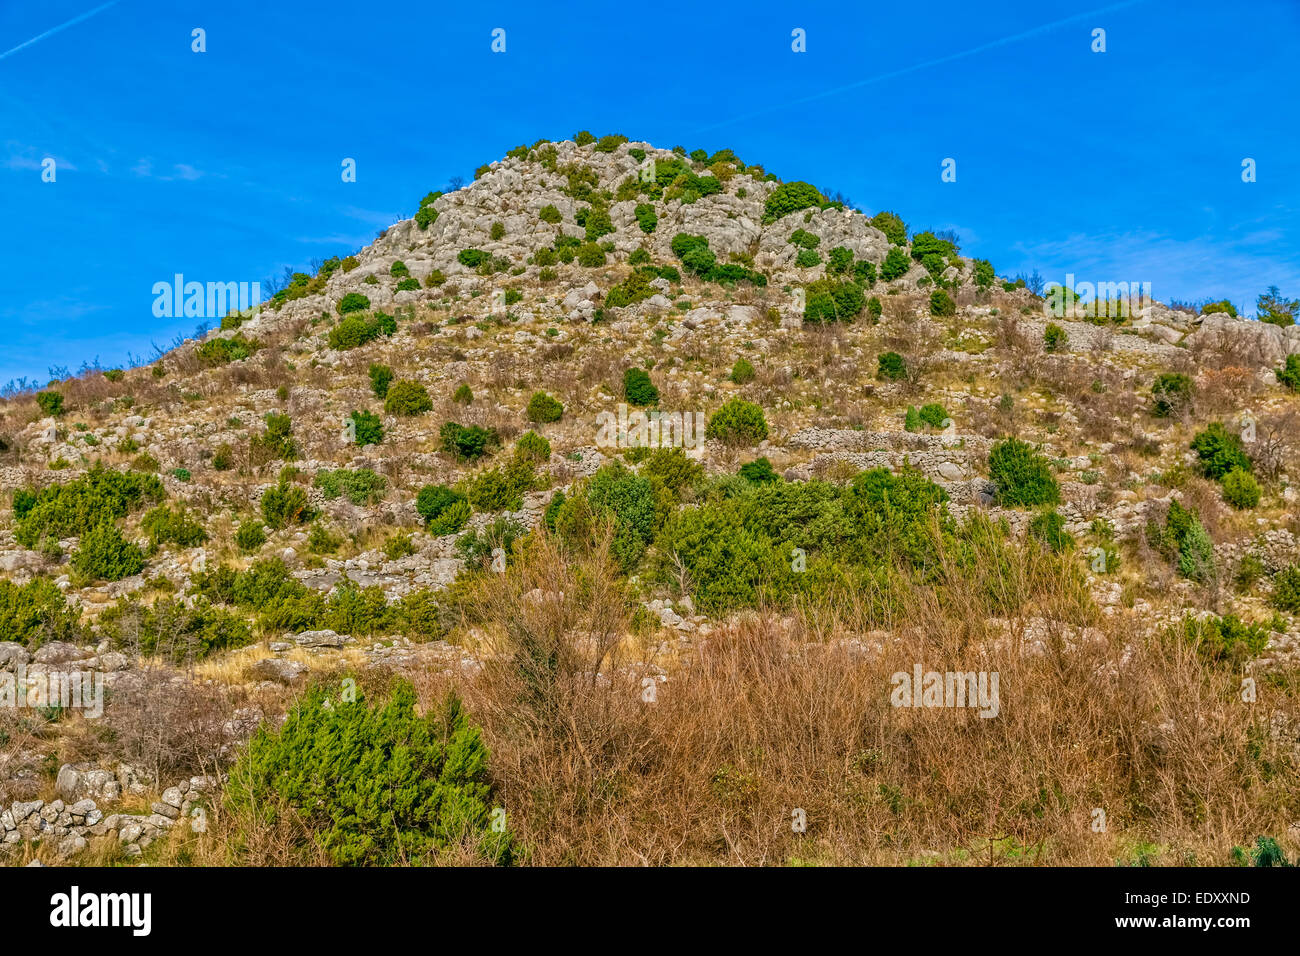 Panorama of the nature in Dalmatian hinterland, winter time. - Stock Image